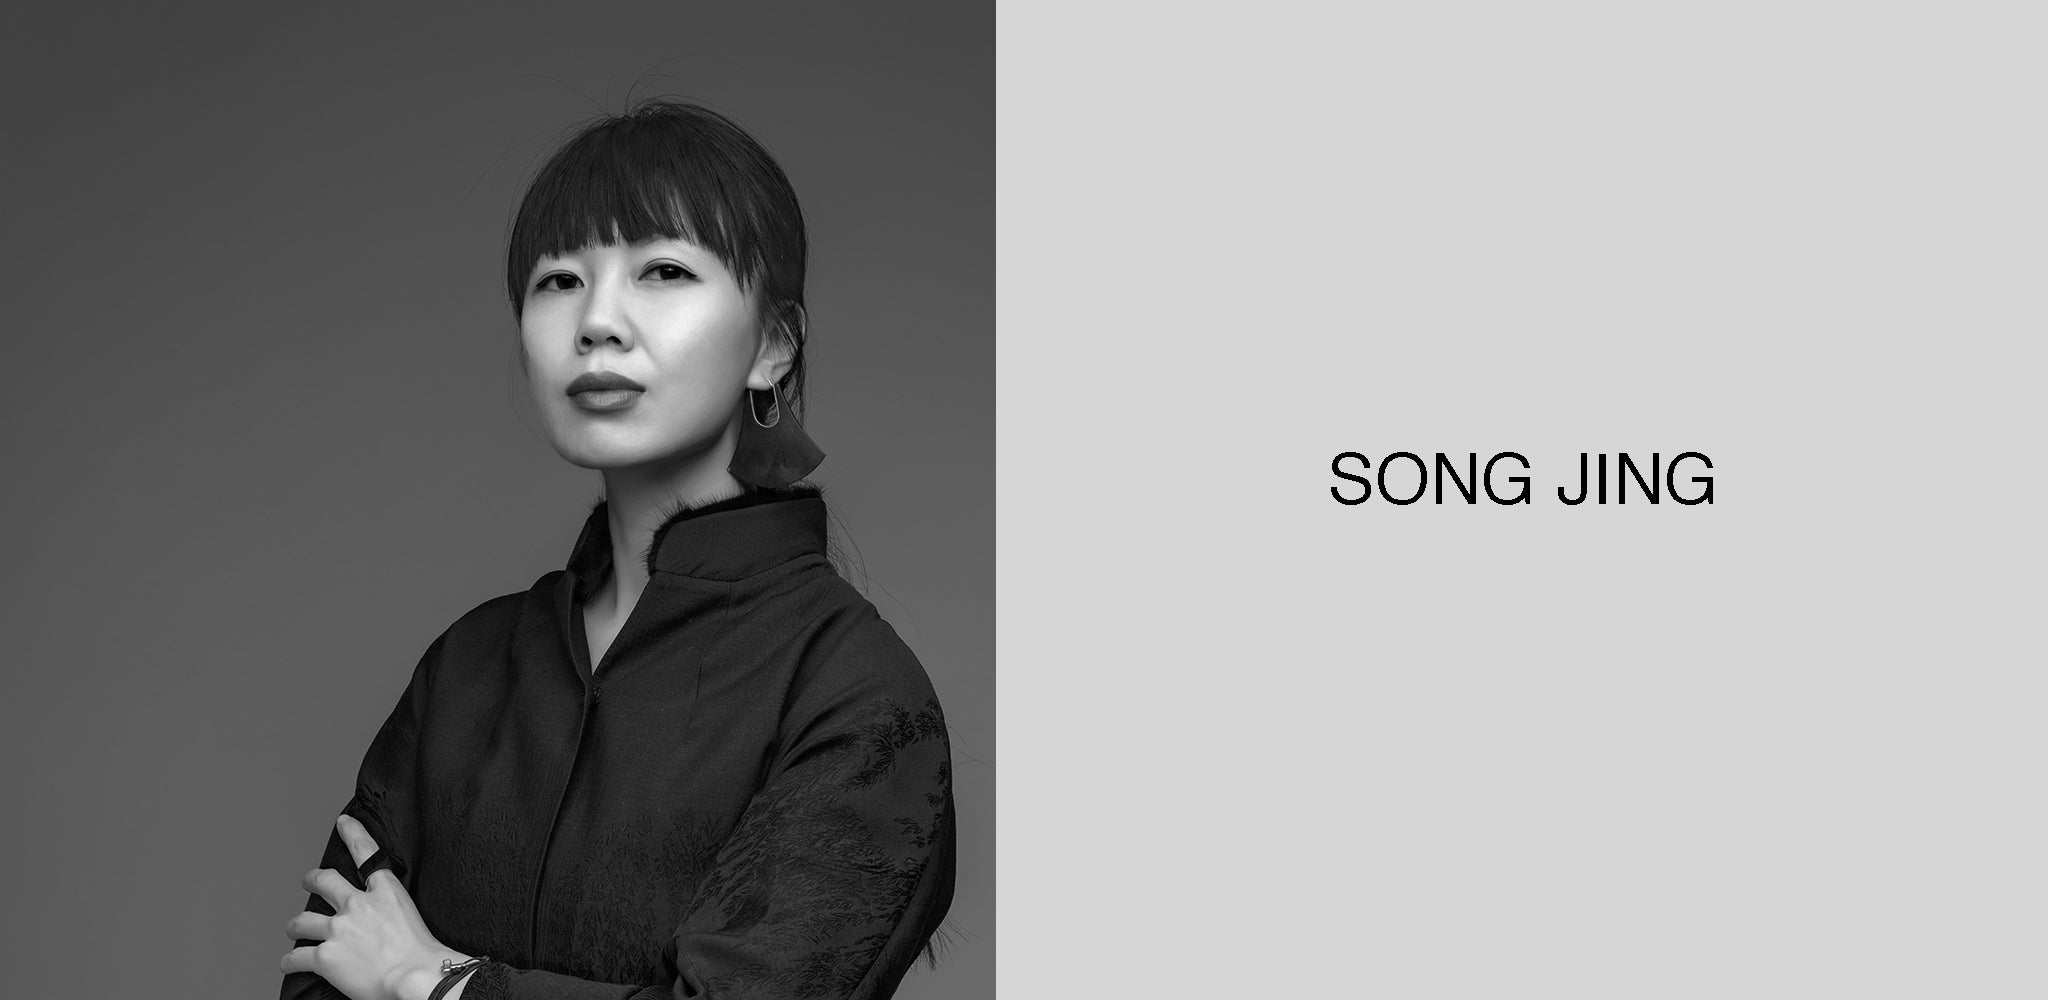 SONG JING